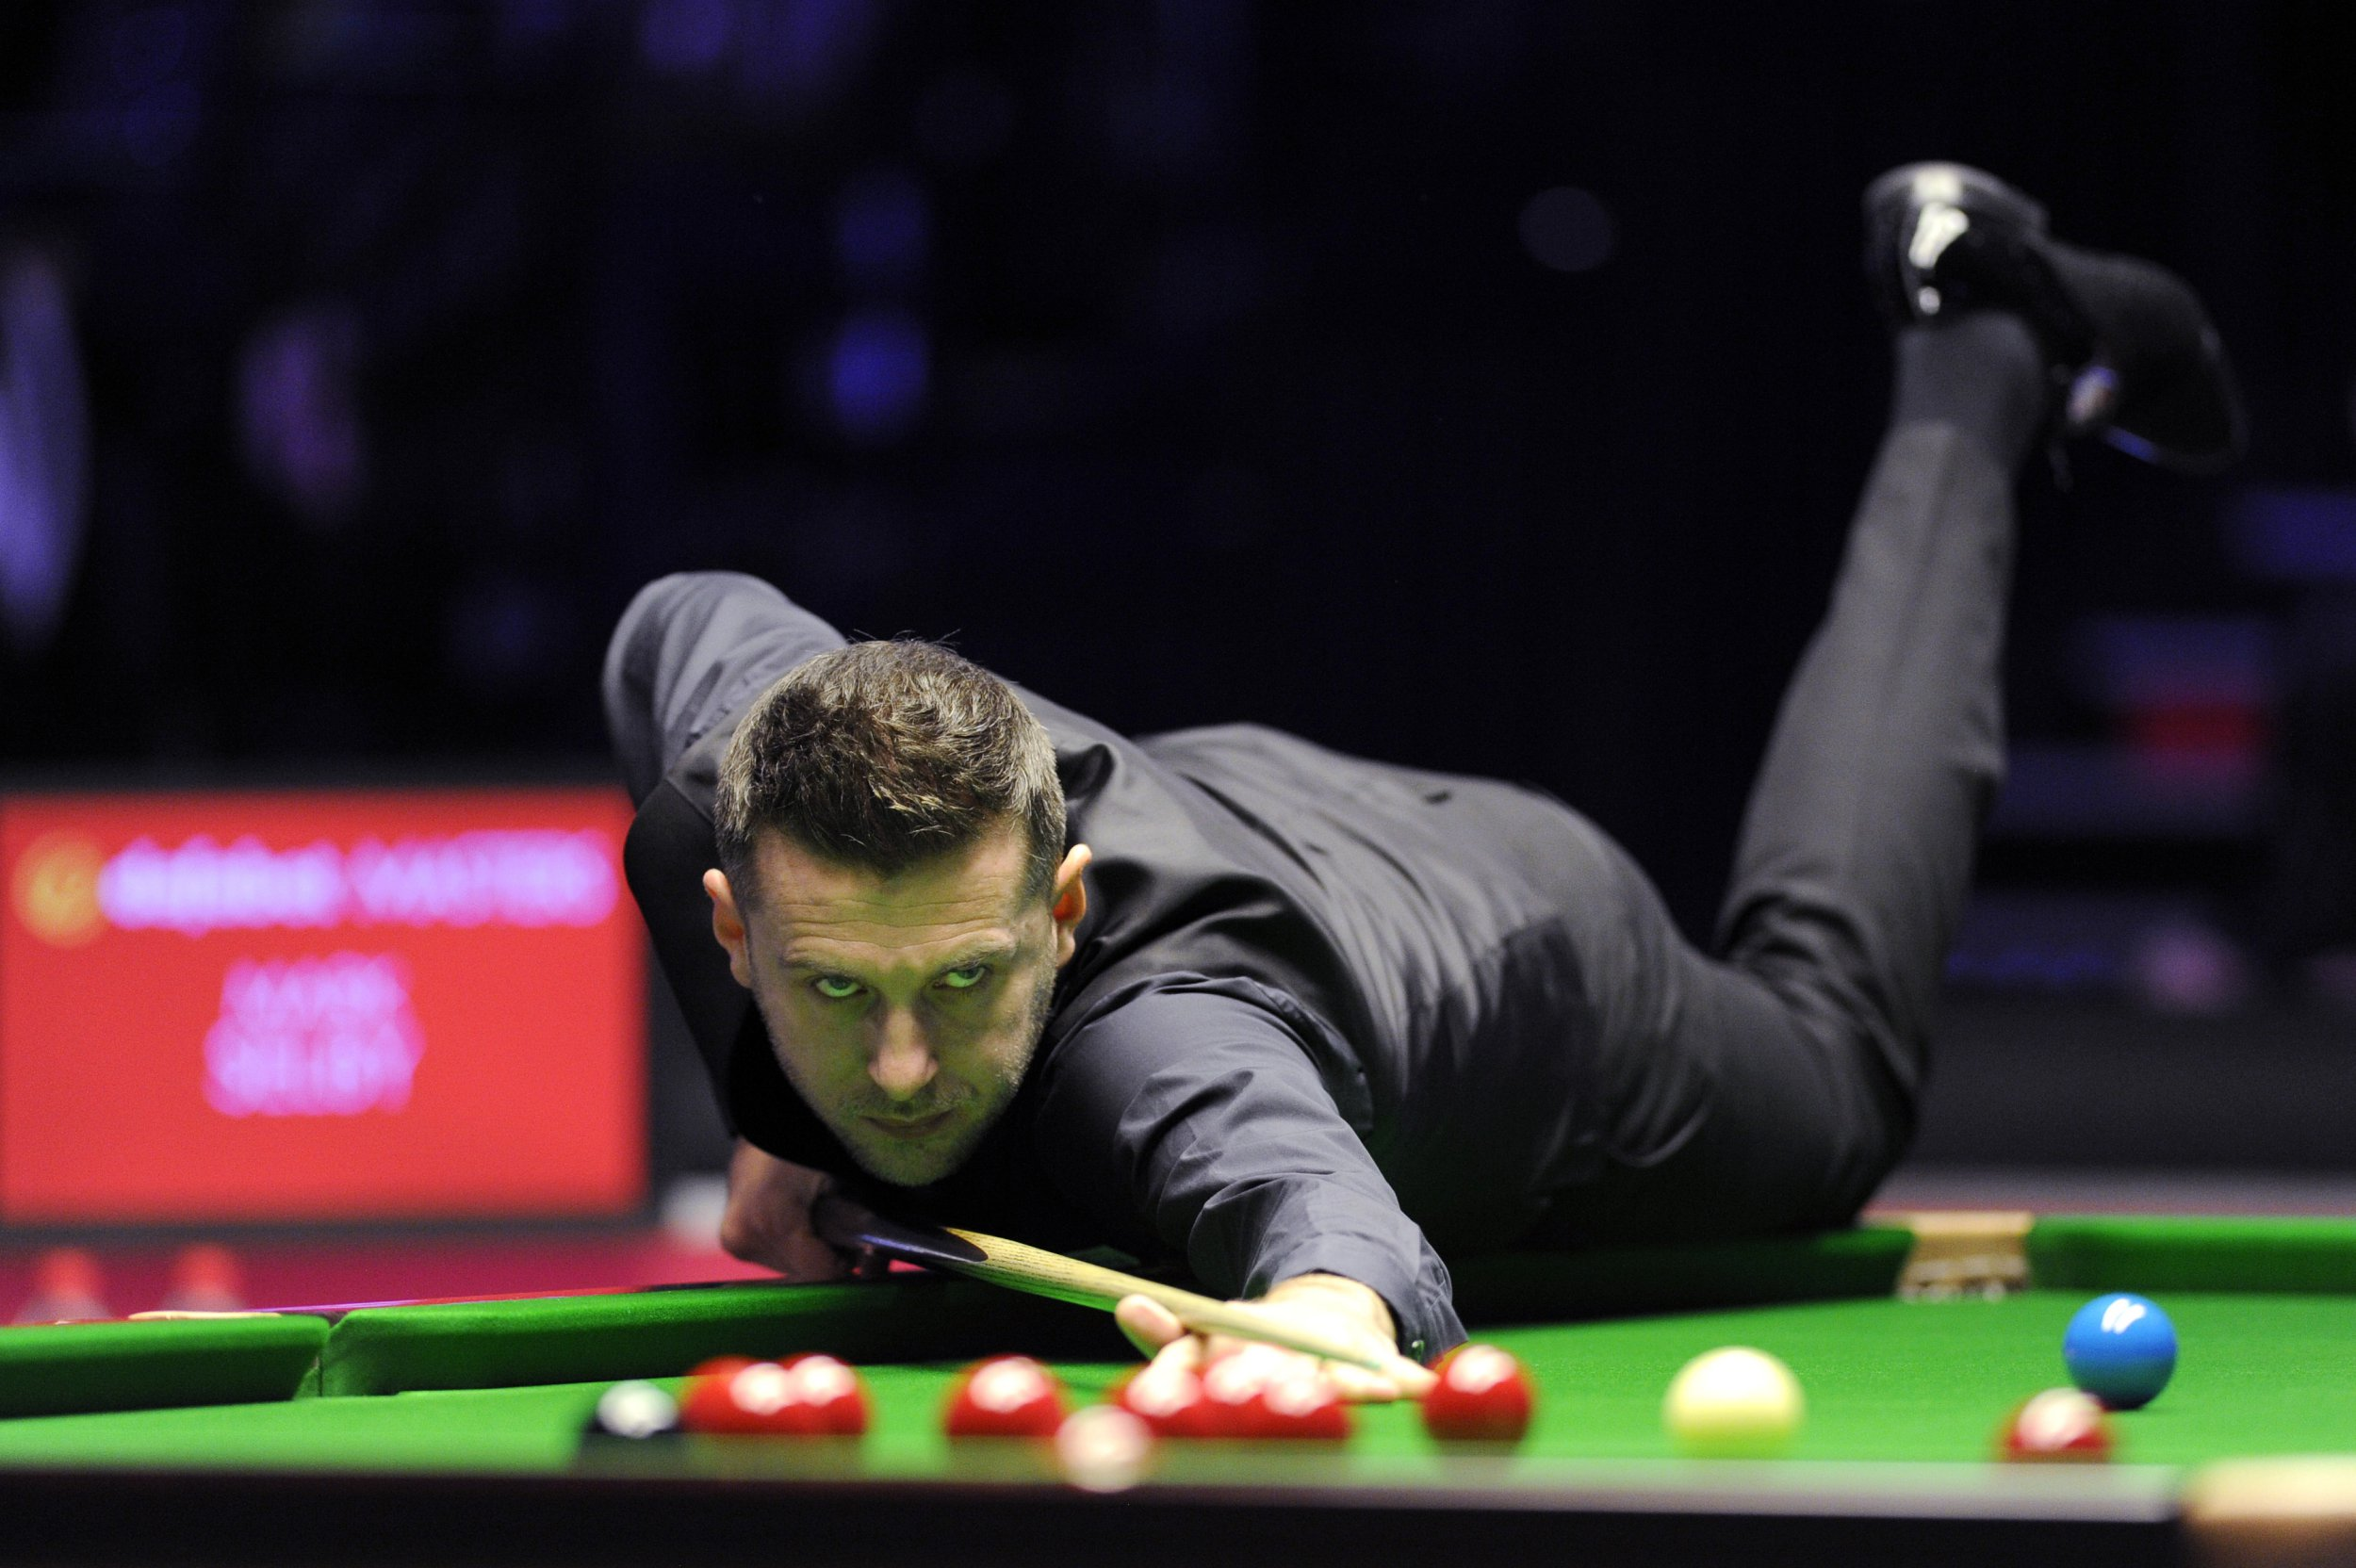 Mark Selby joins Judd Trump, Neil Robertson and more in Championship League Winners' Group